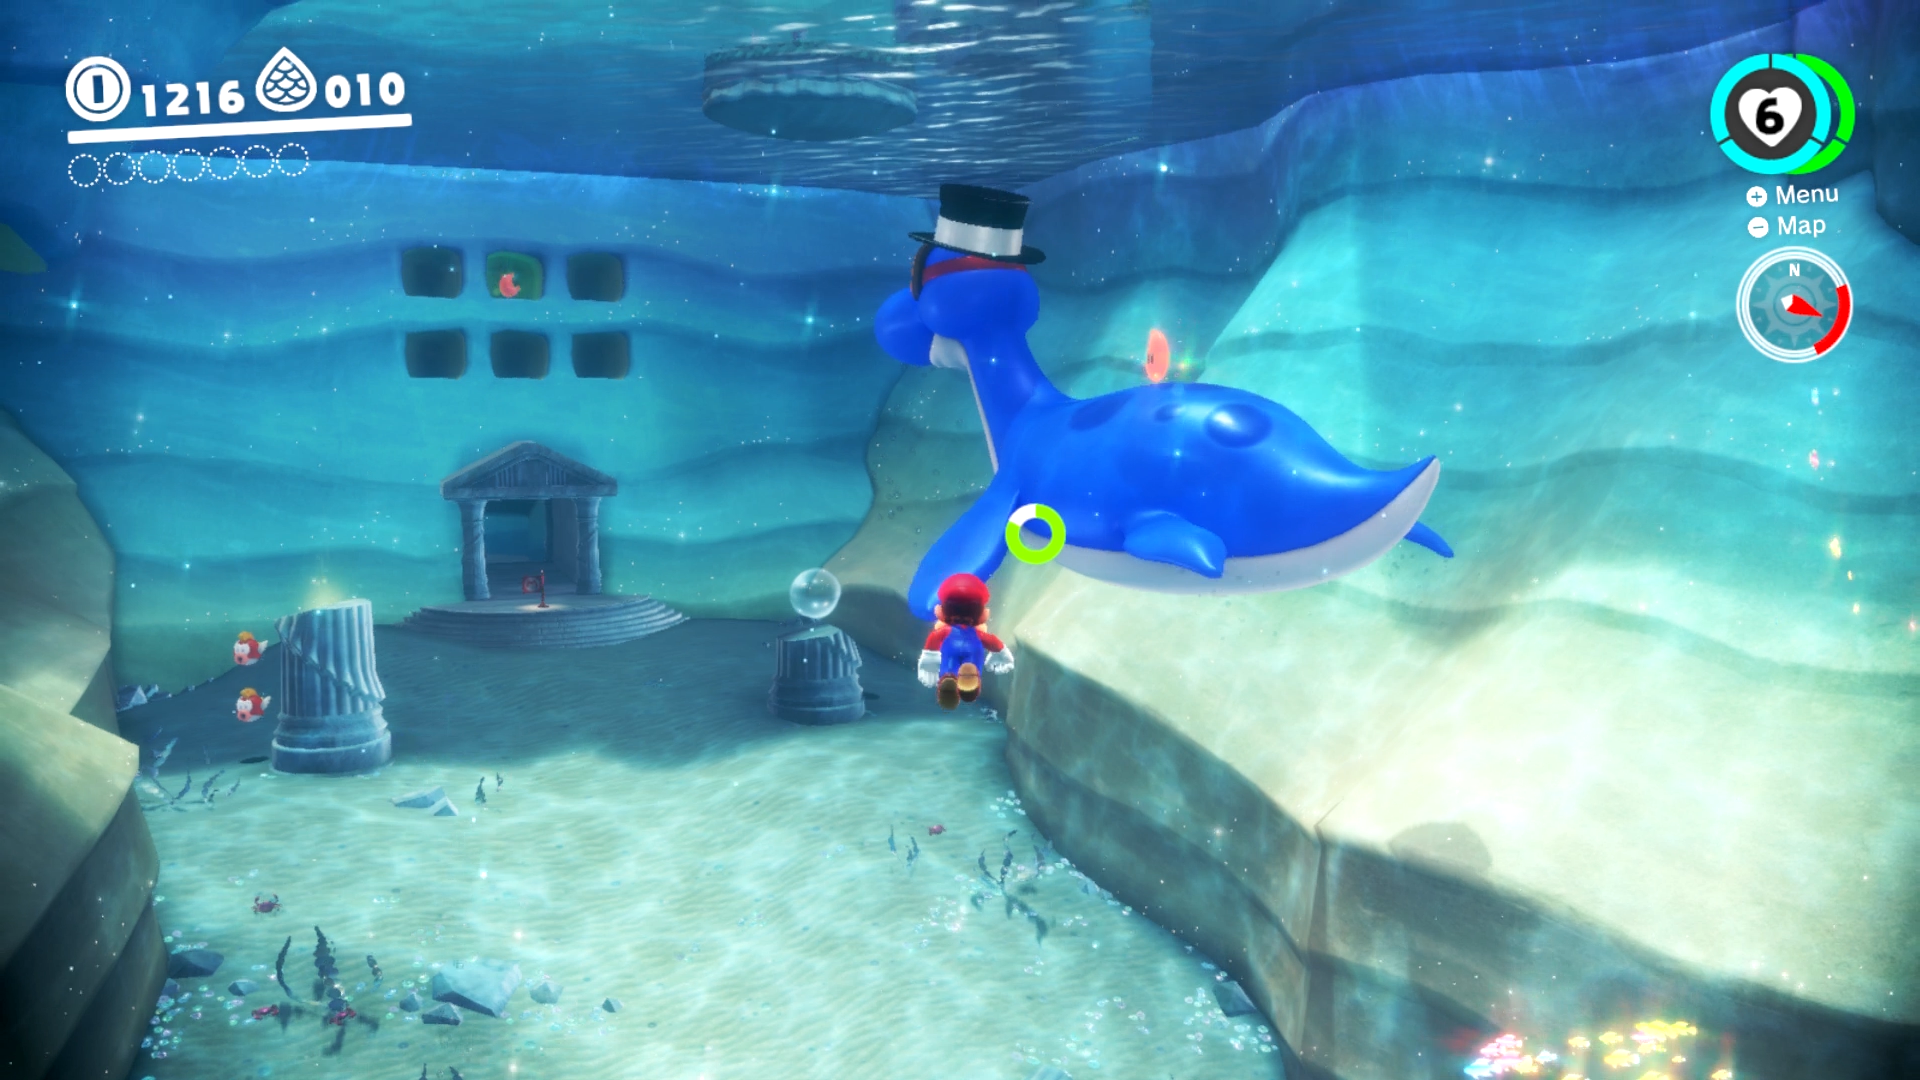 Super Mario Odyssey - Diving underwater